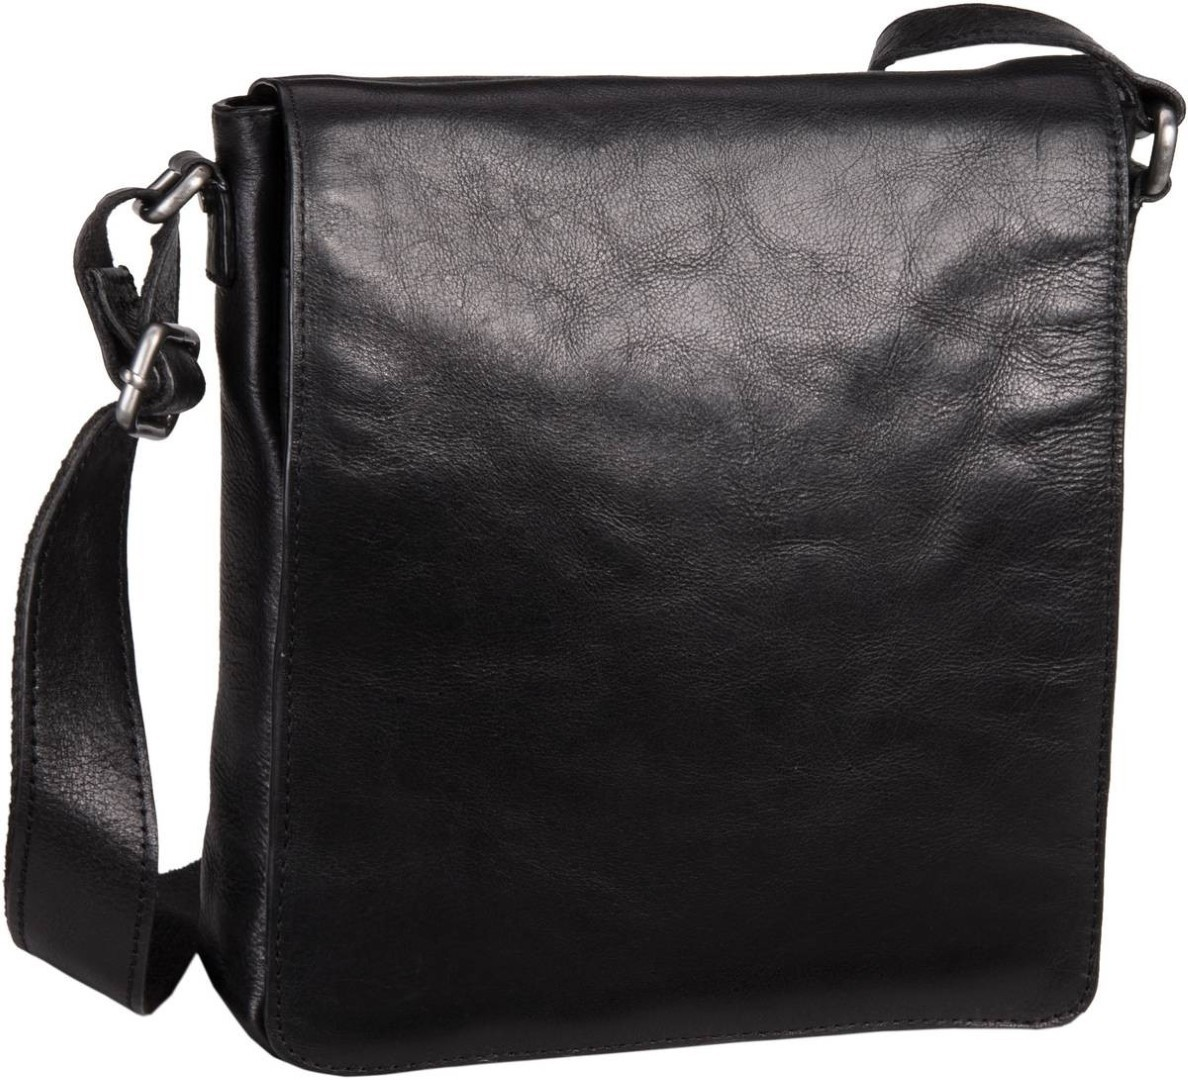 18de36b2073 Leonhard Heyden cambridge shoulder bag s Tassen > Casual tassen >  Messengerbag